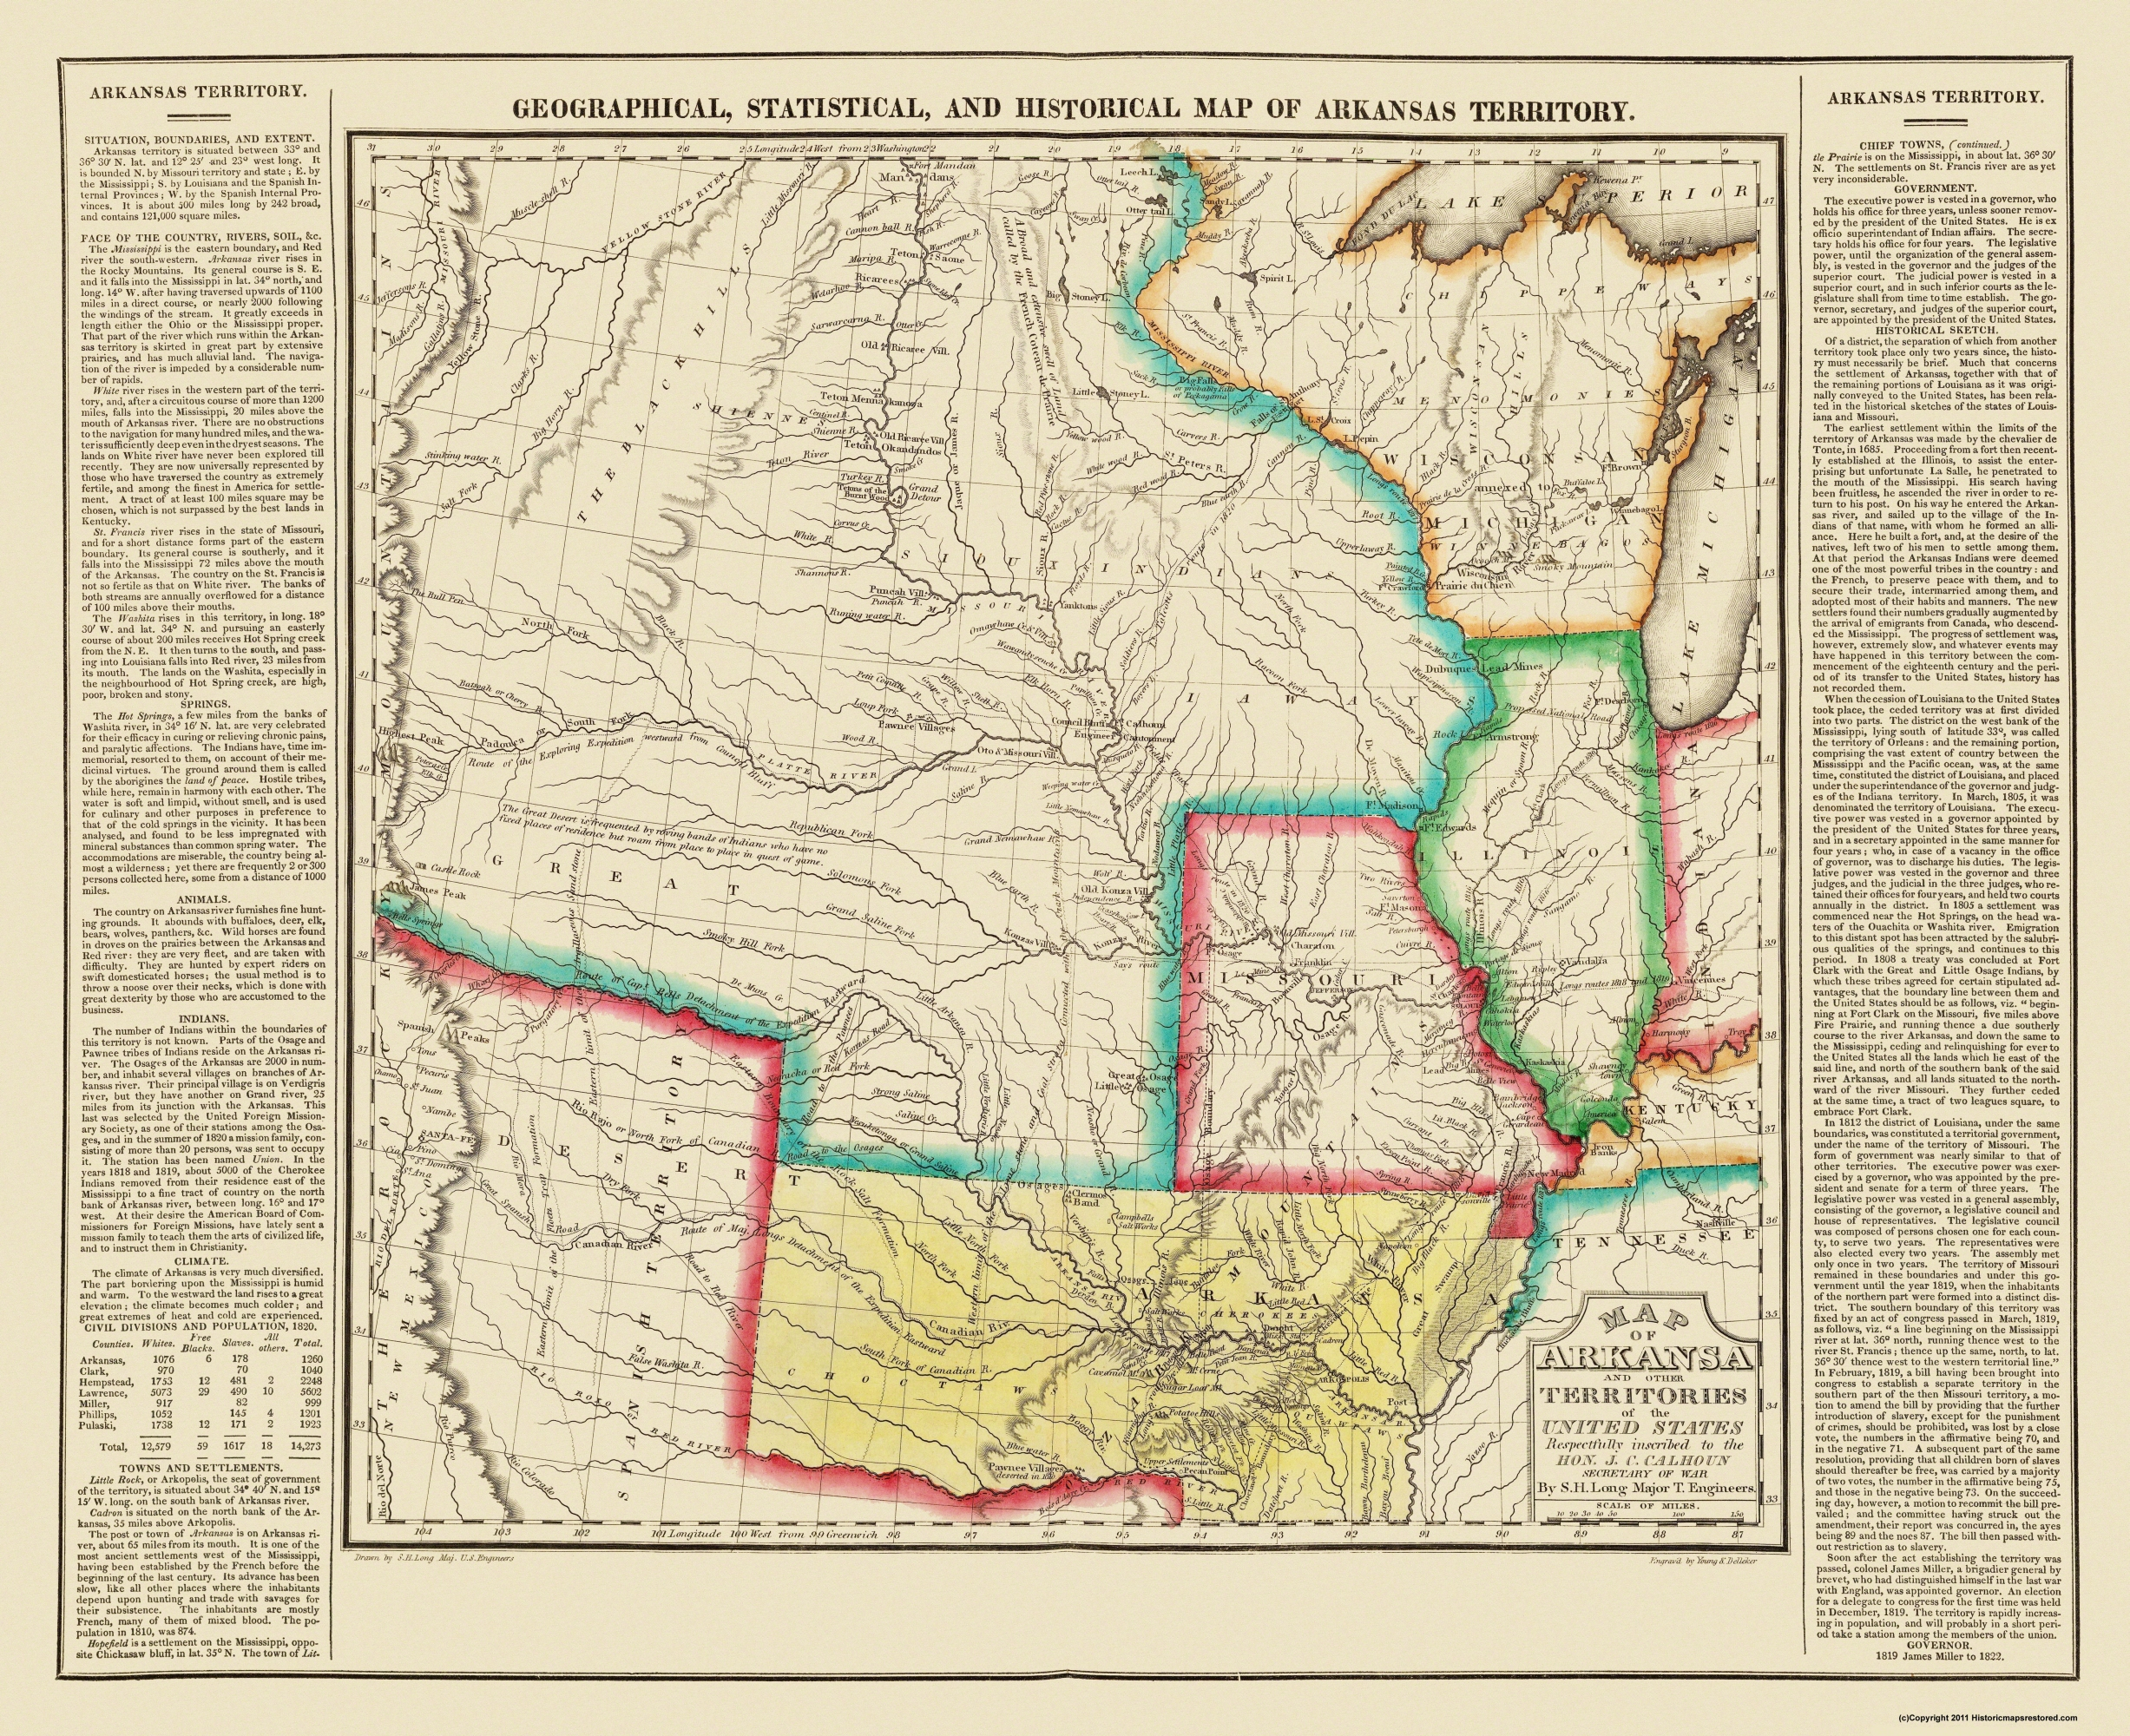 Old State Map - Arkansas Territory - Long 1822